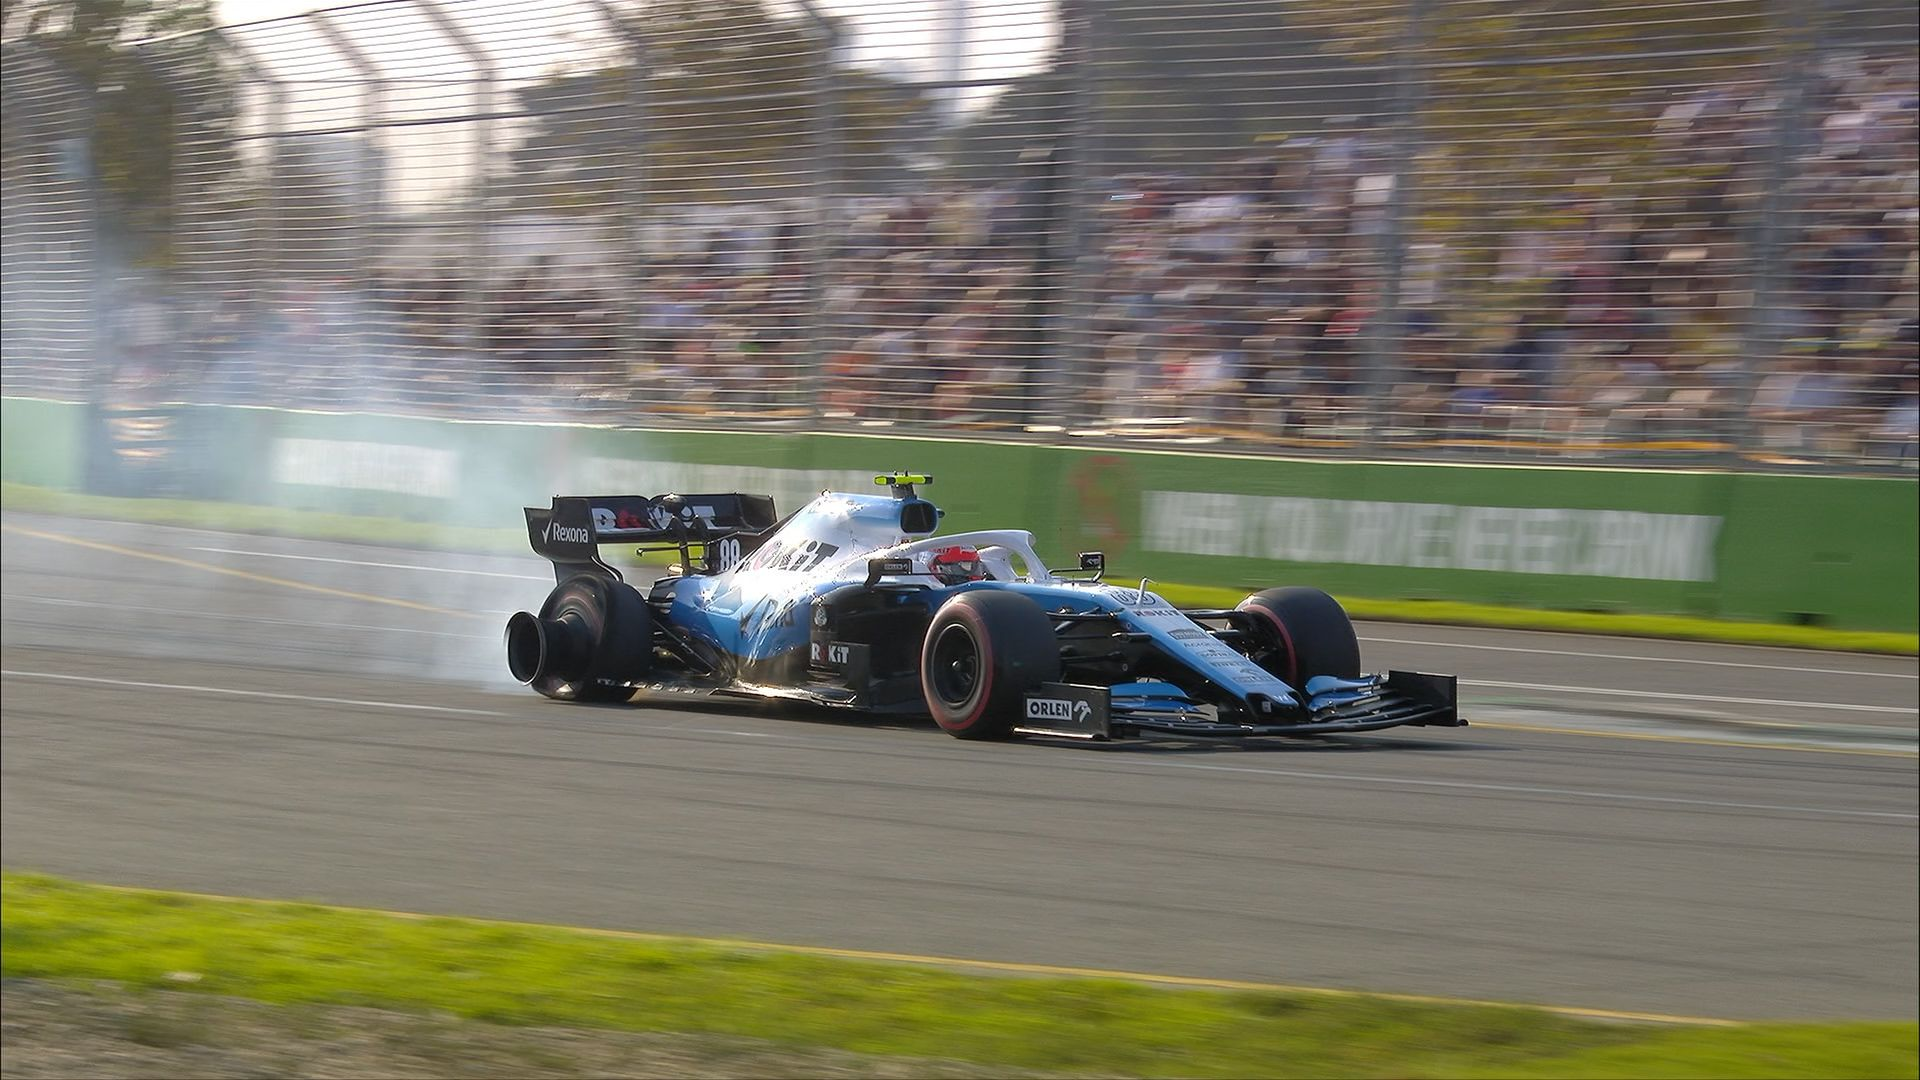 Qualifying: Kubica hits wall and exits Q1 with puncture